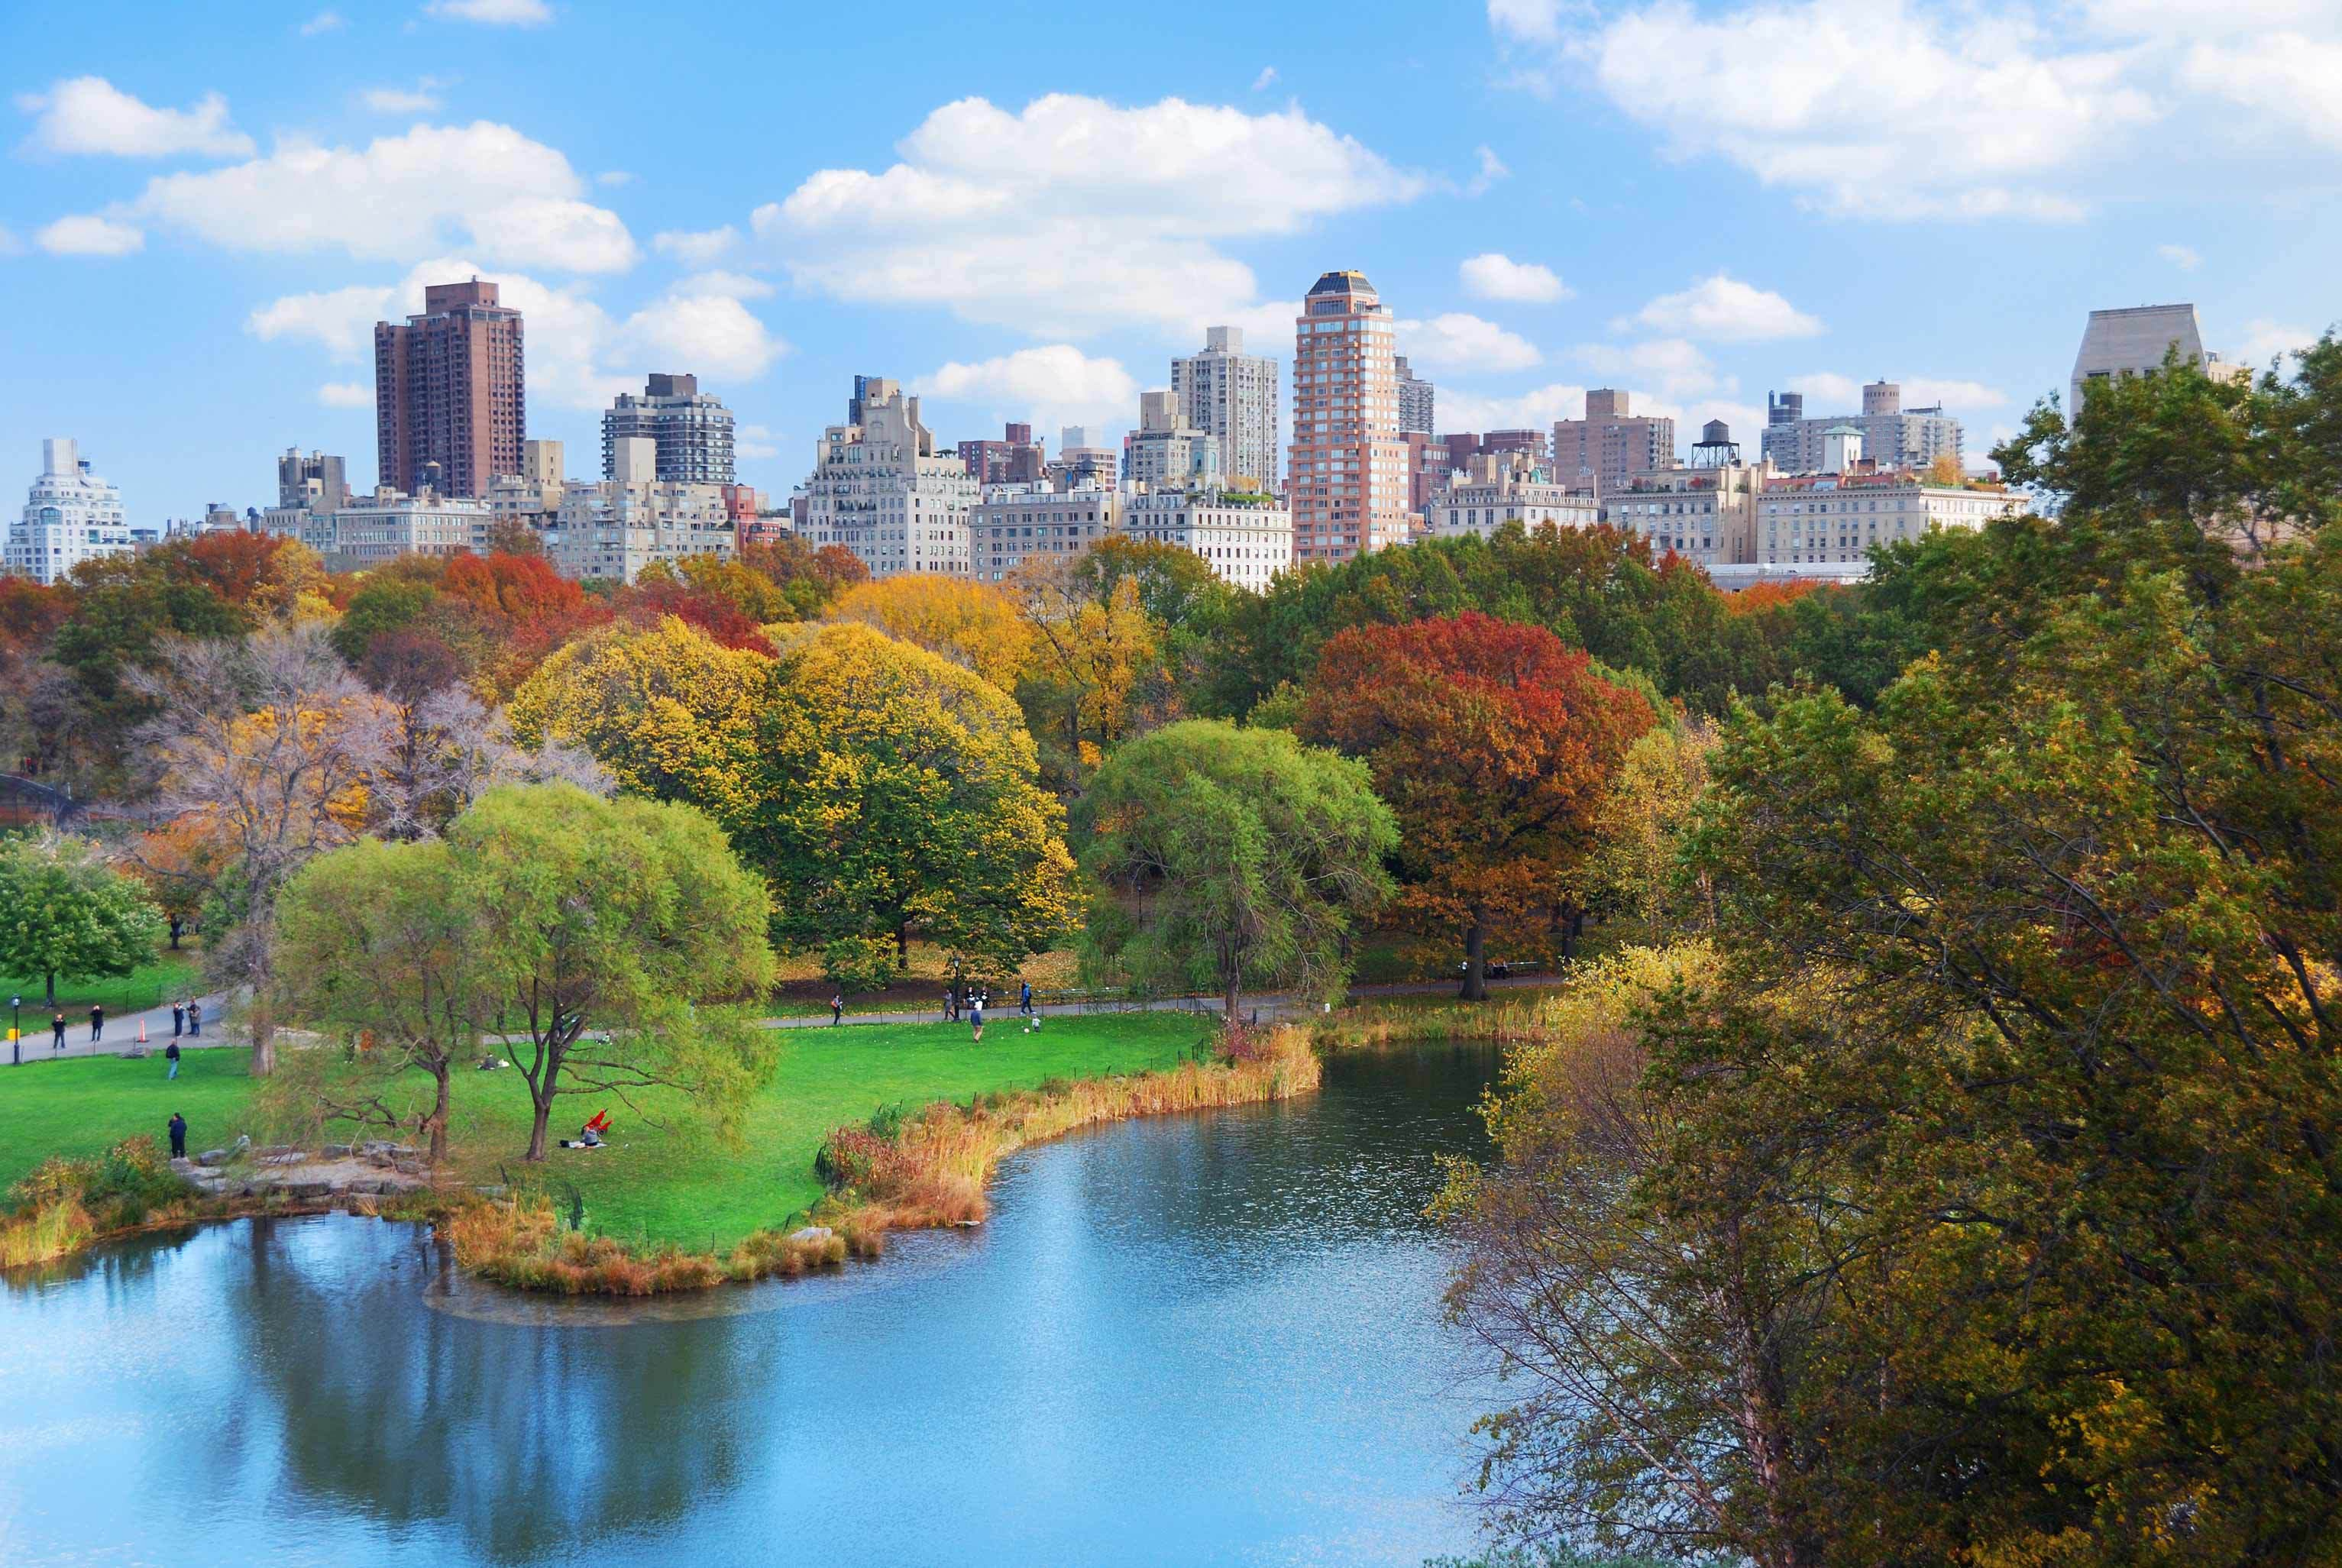 Pictures Of Central Park